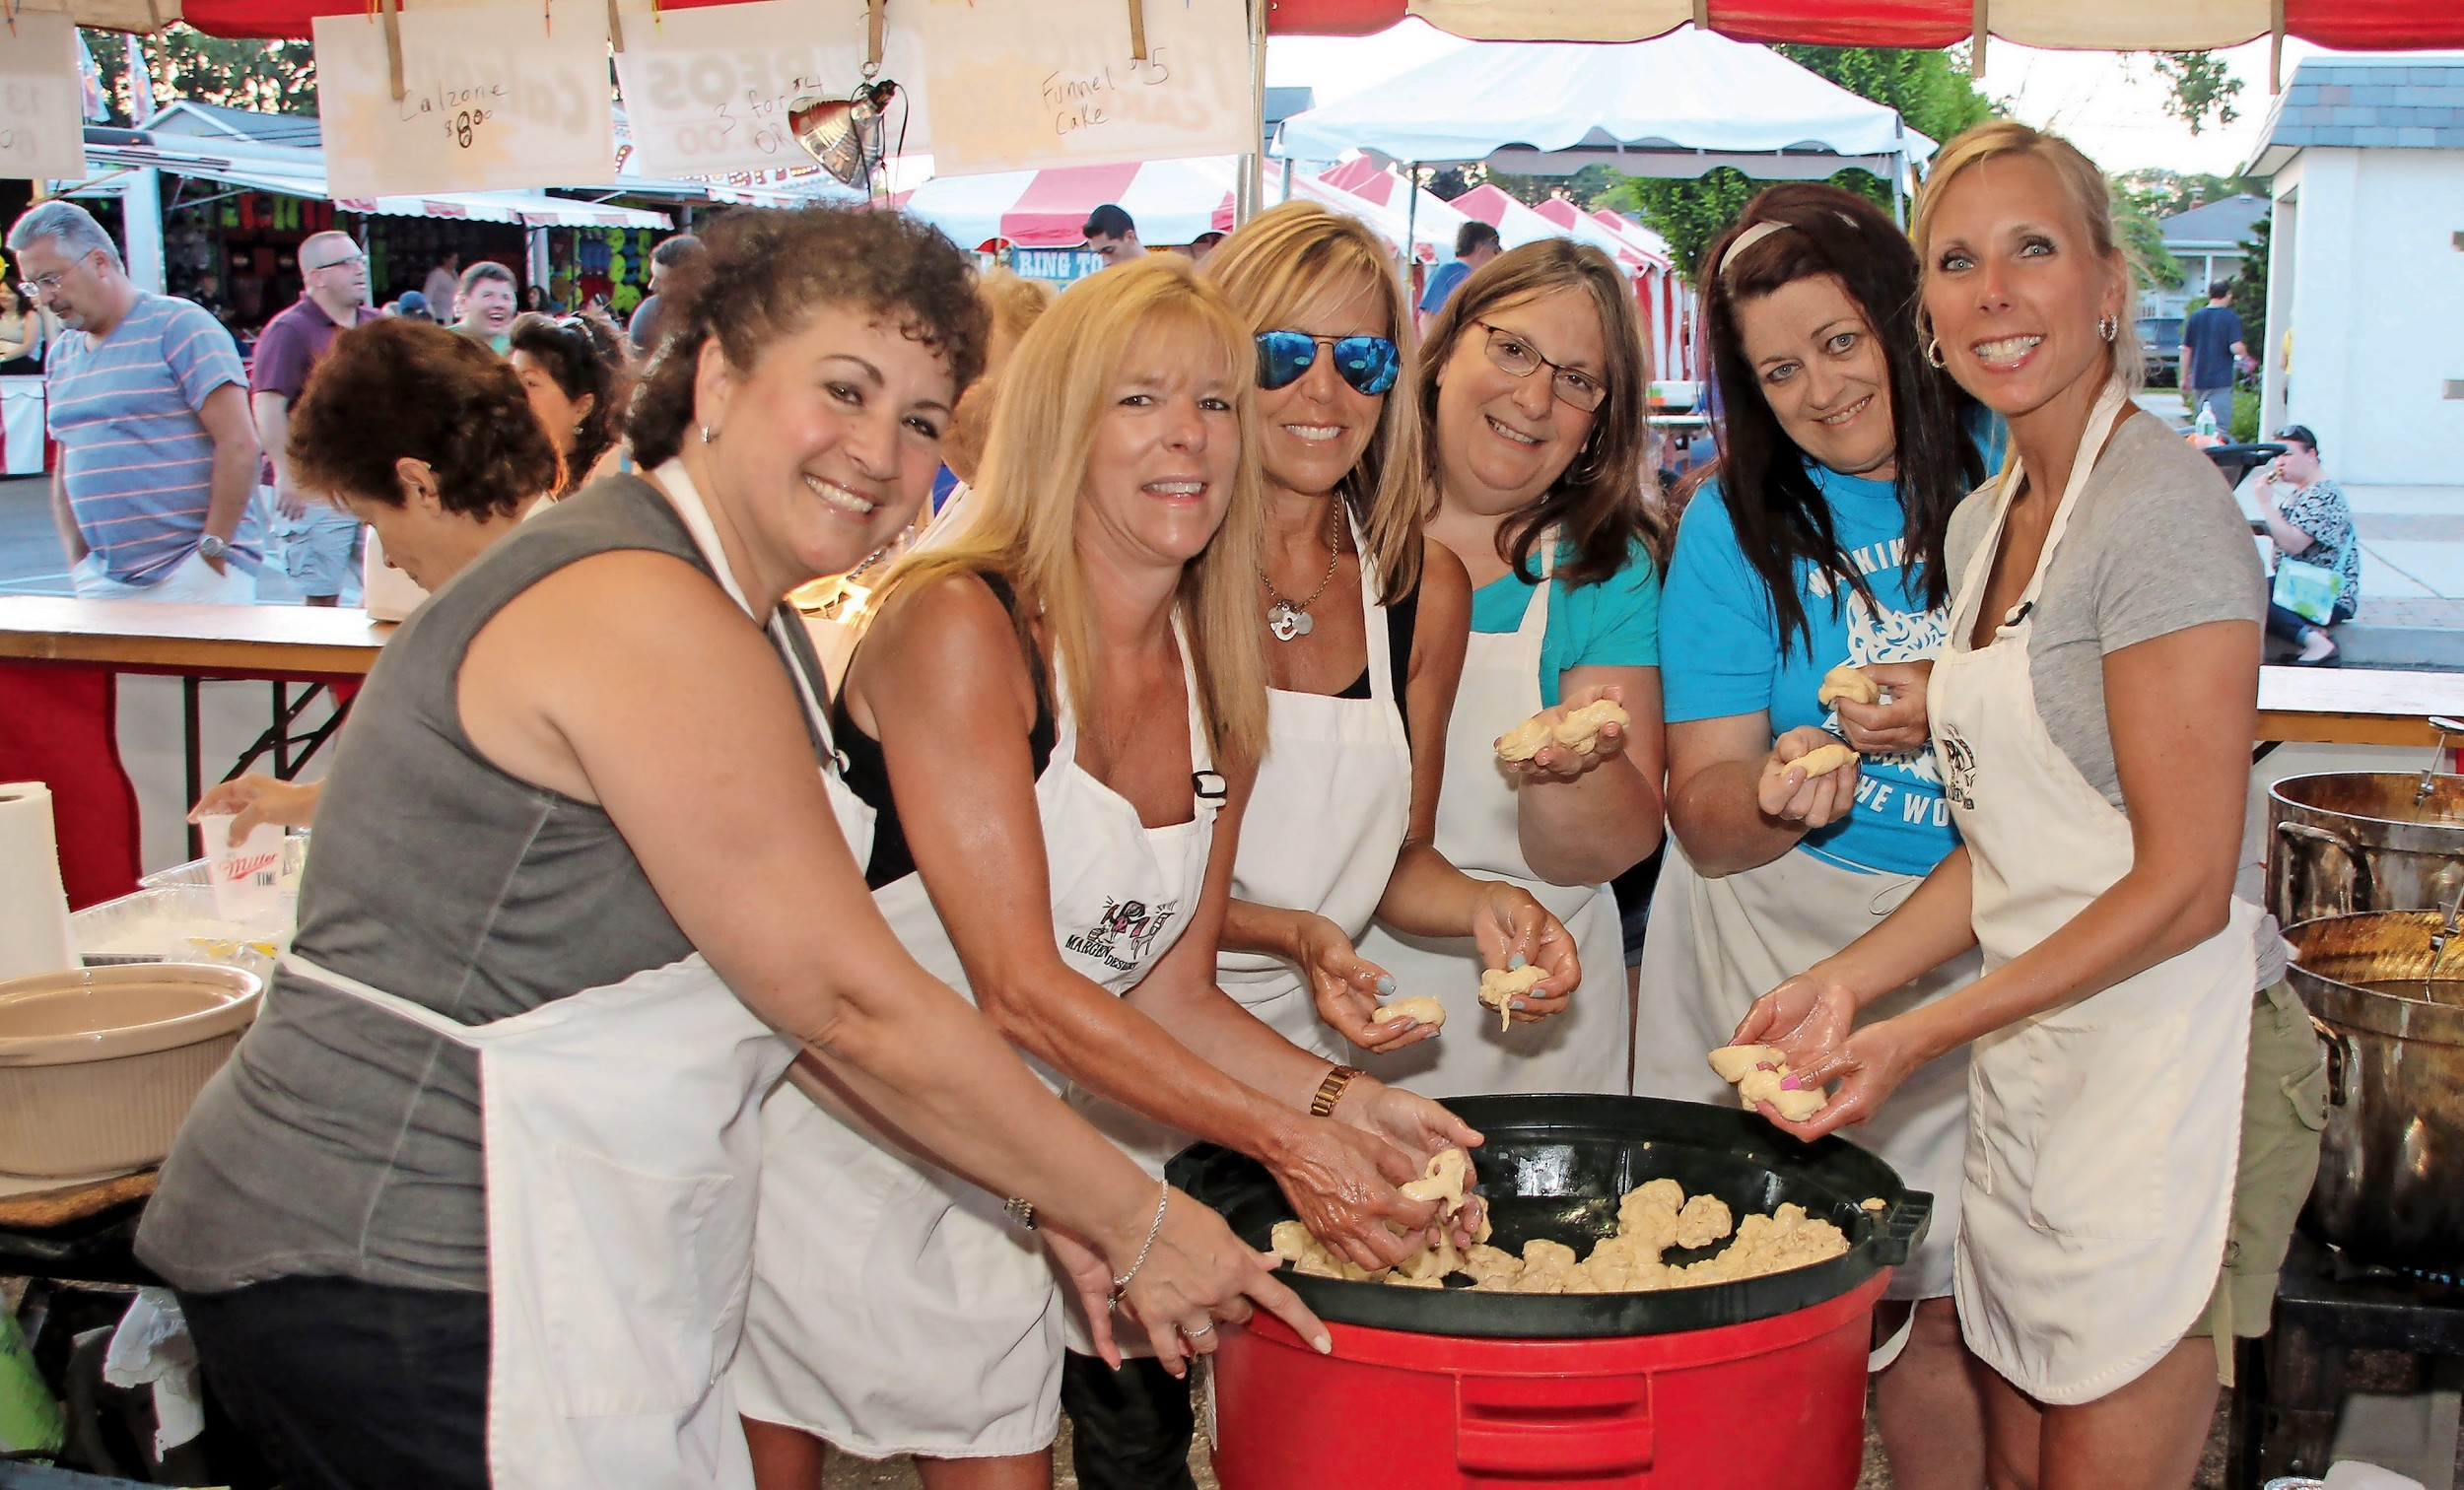 Fran Zinerco, left, Justine Silvestri, Joanne DeMichael, Maria Bongiovi, Janine Zacchino and Terry Nacci made zeppoles from scratch.